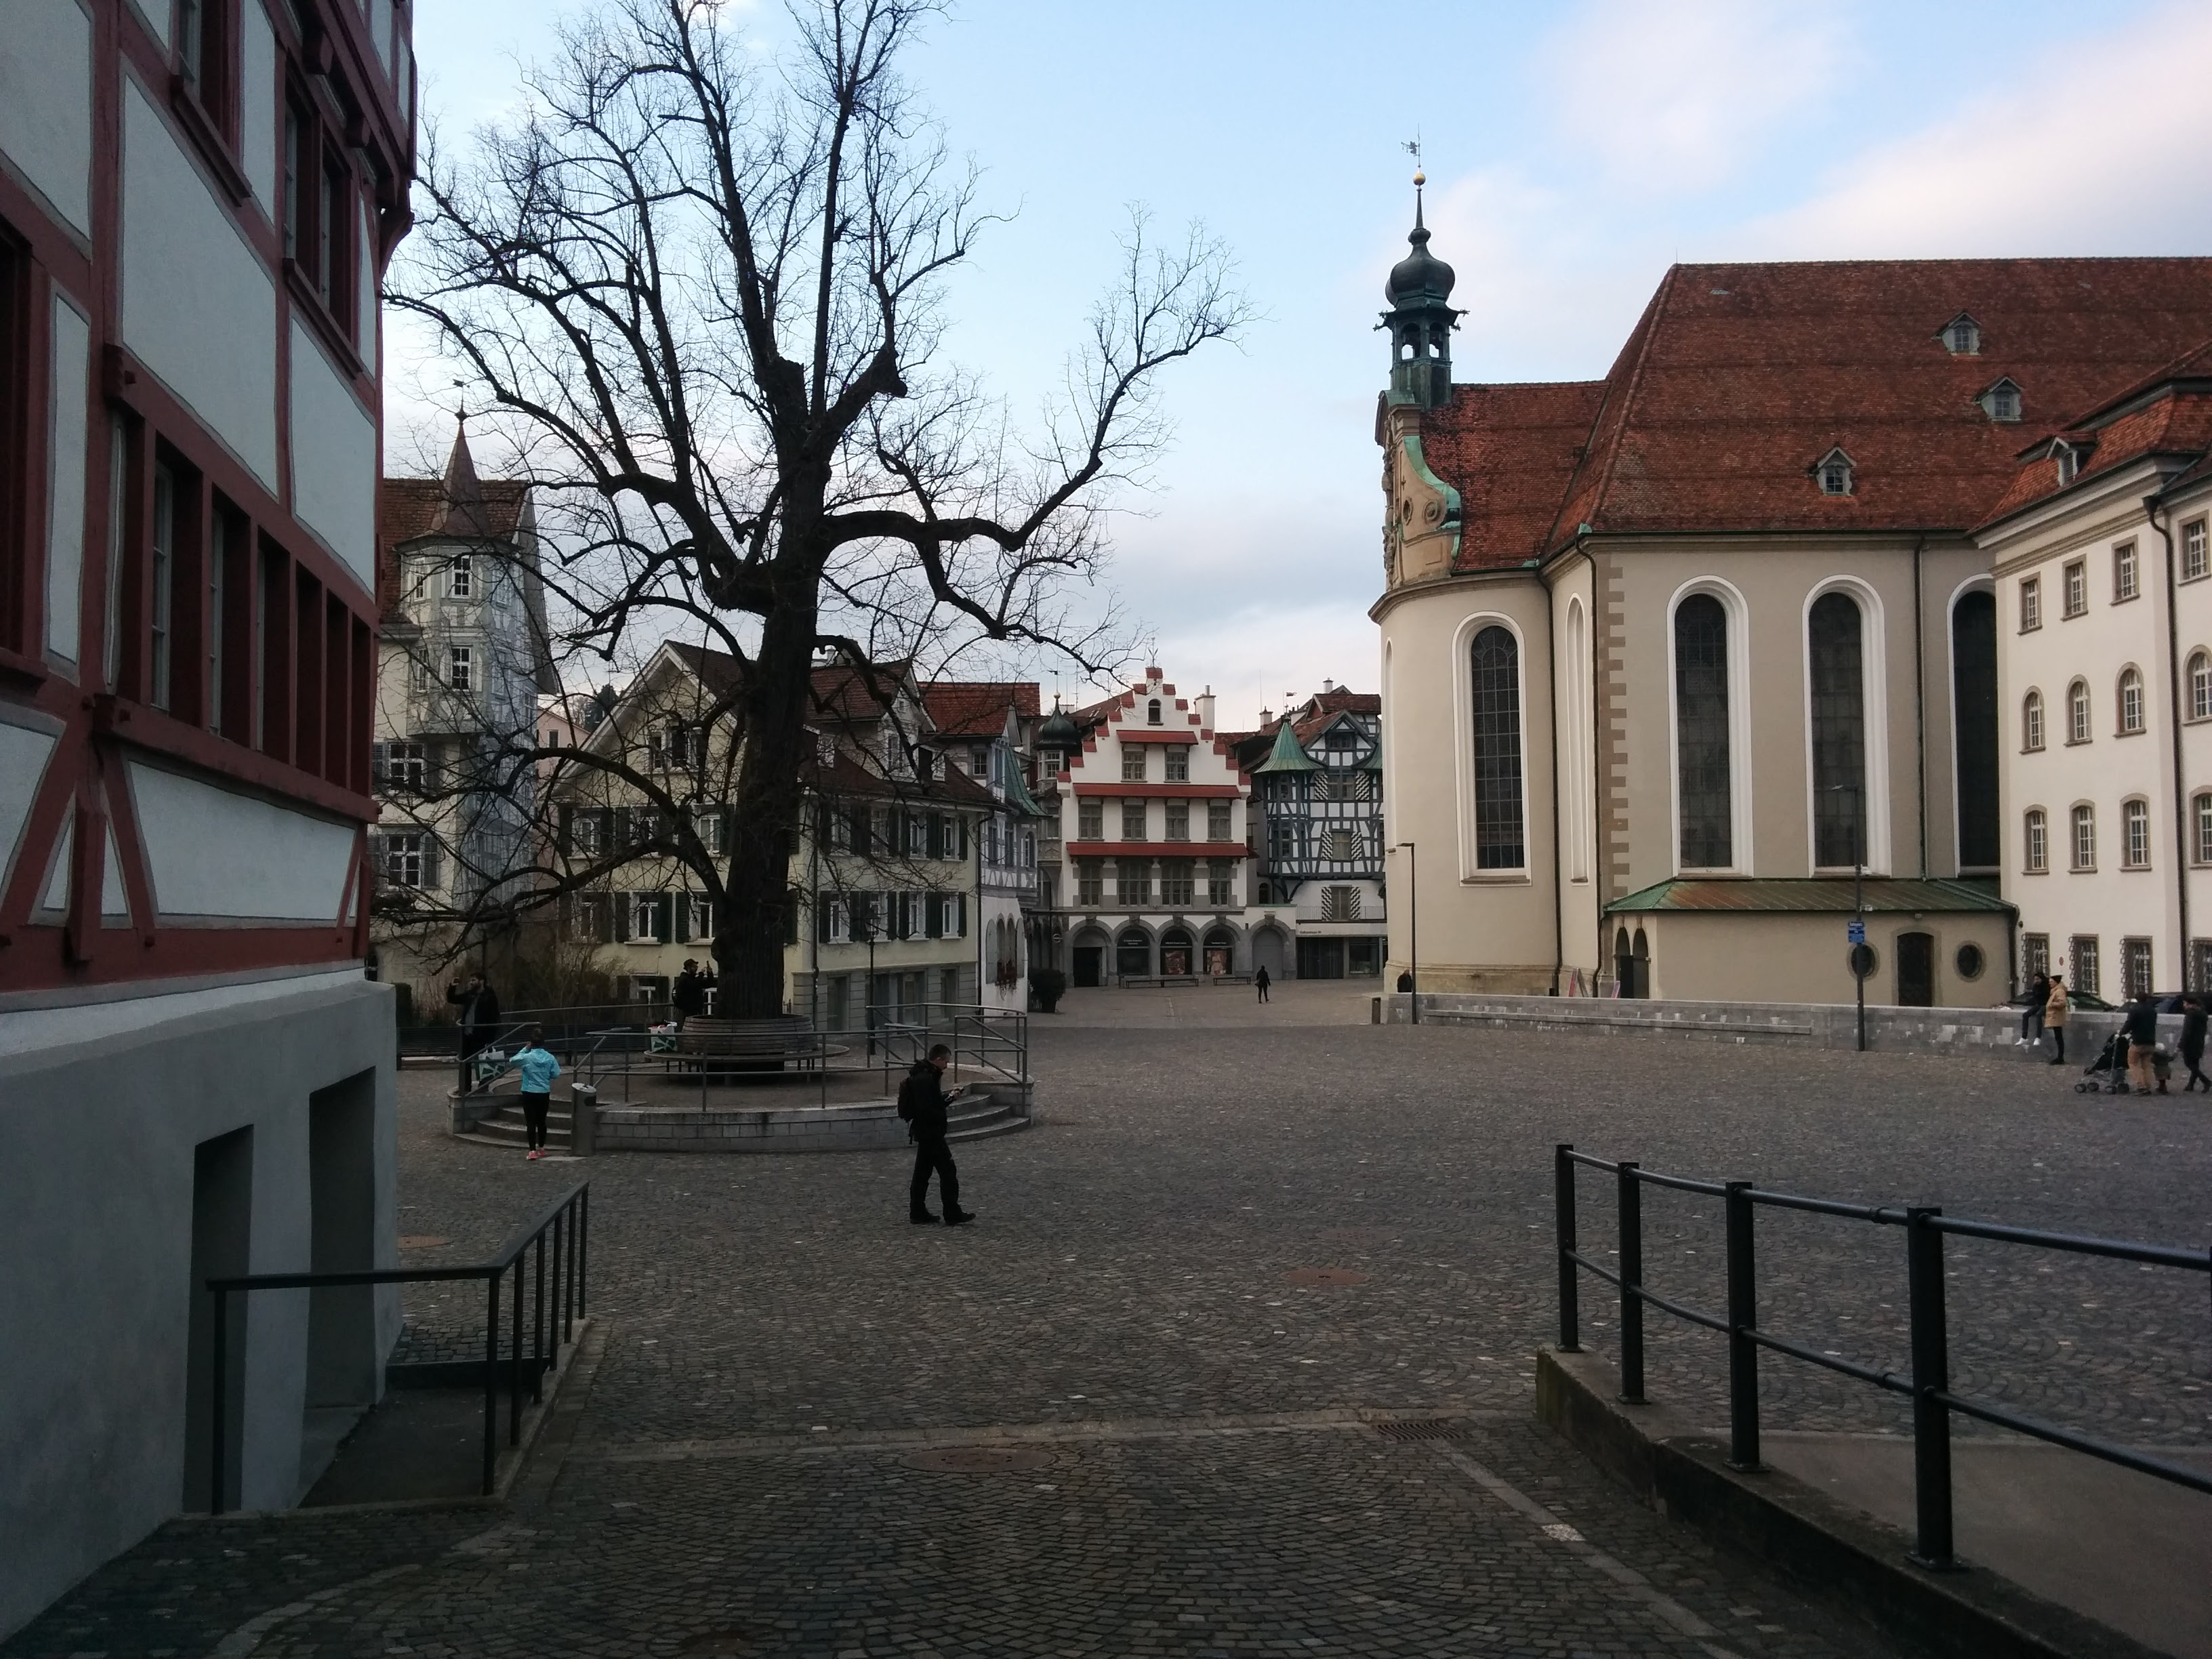 A quaint village square in St. Gallen